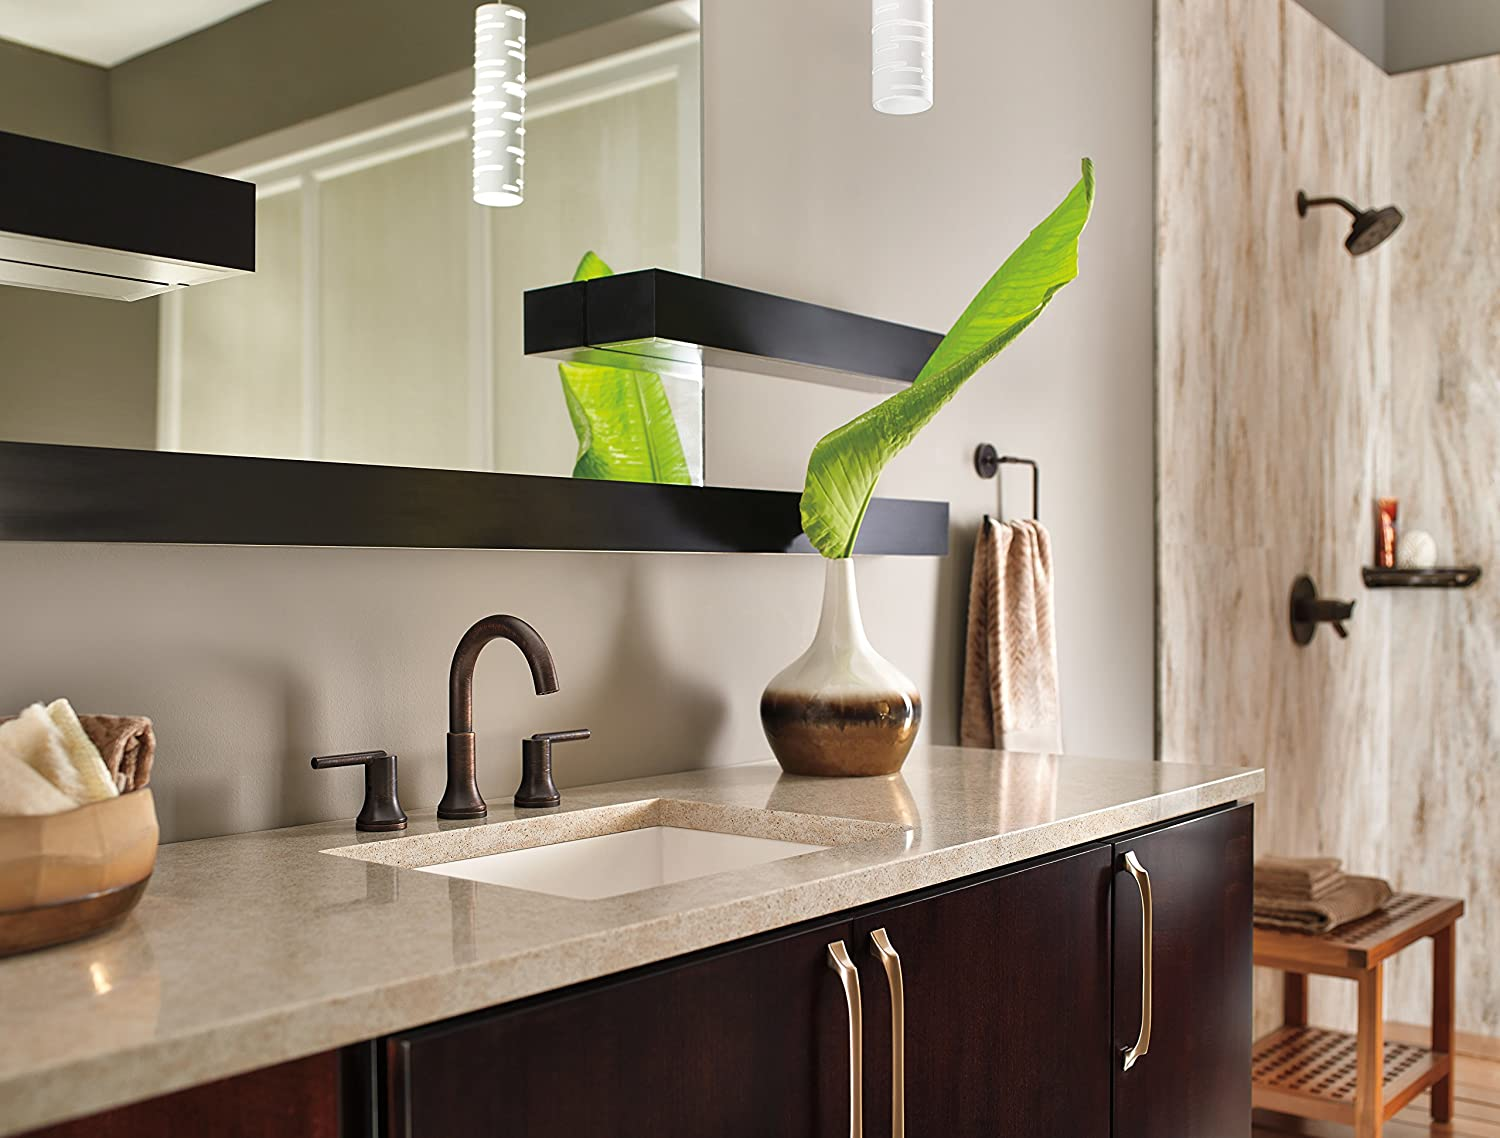 awesome kitchen wall installation fresh of view bath faucet bathtub padlords delta faucets us exploded trinsic bathroom elegant beautiful